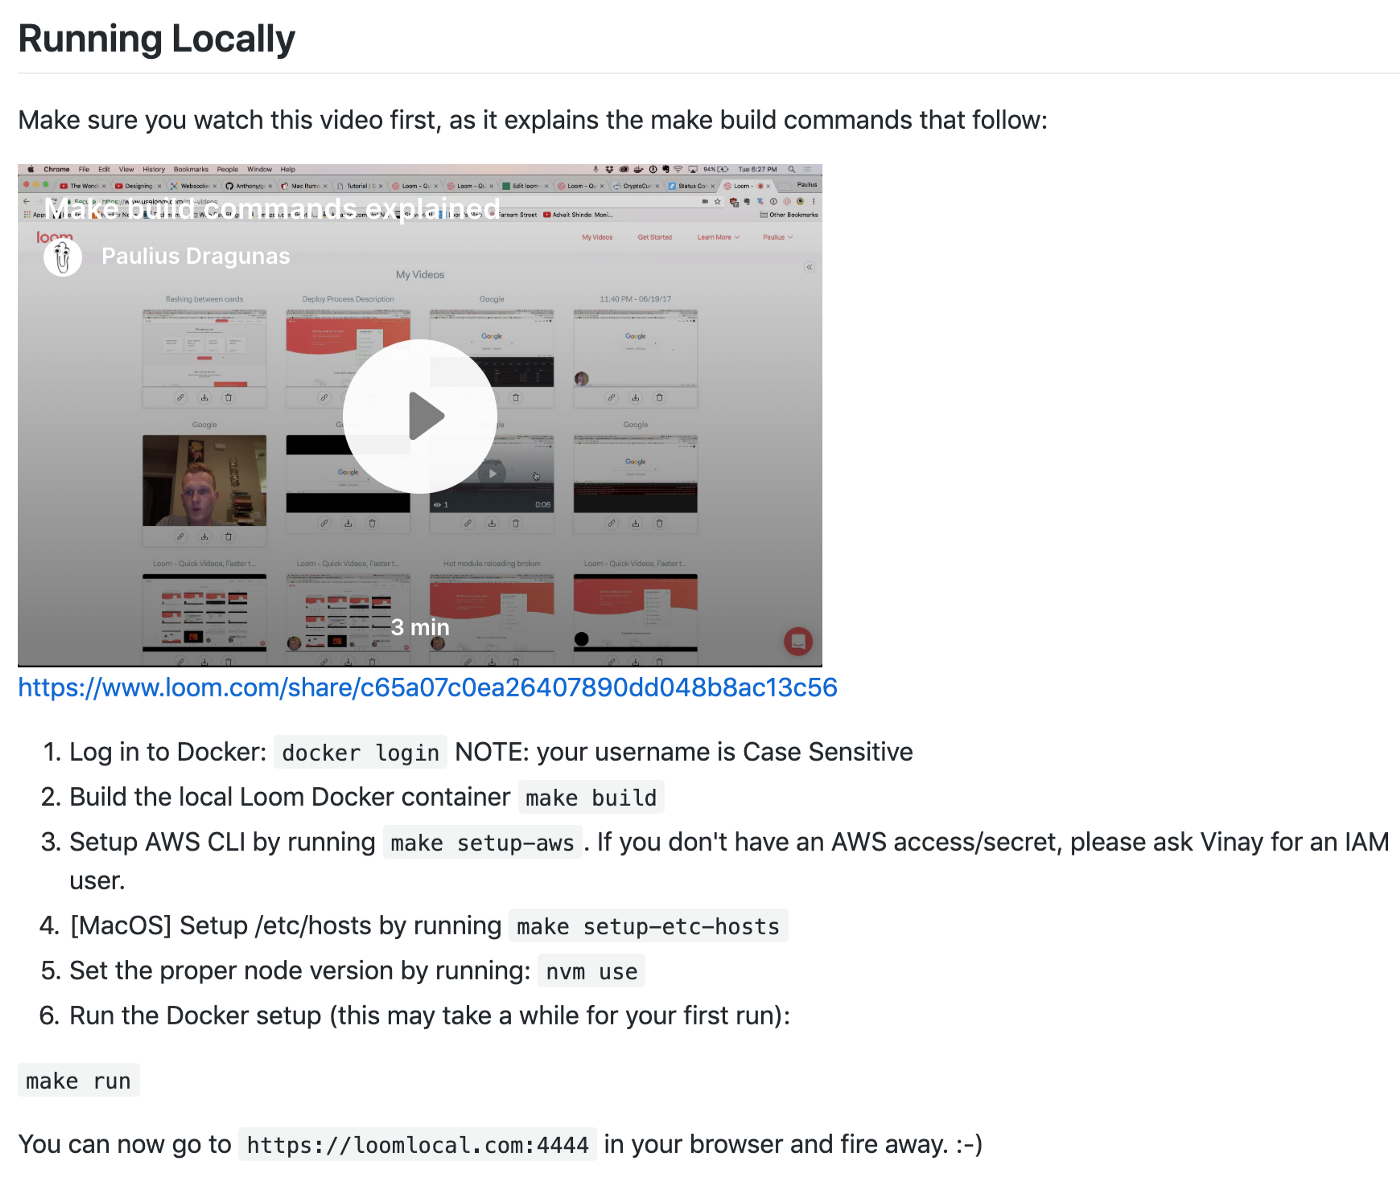 A screenshot of our Loom web infrastructure README that includes a video along with written instructions.